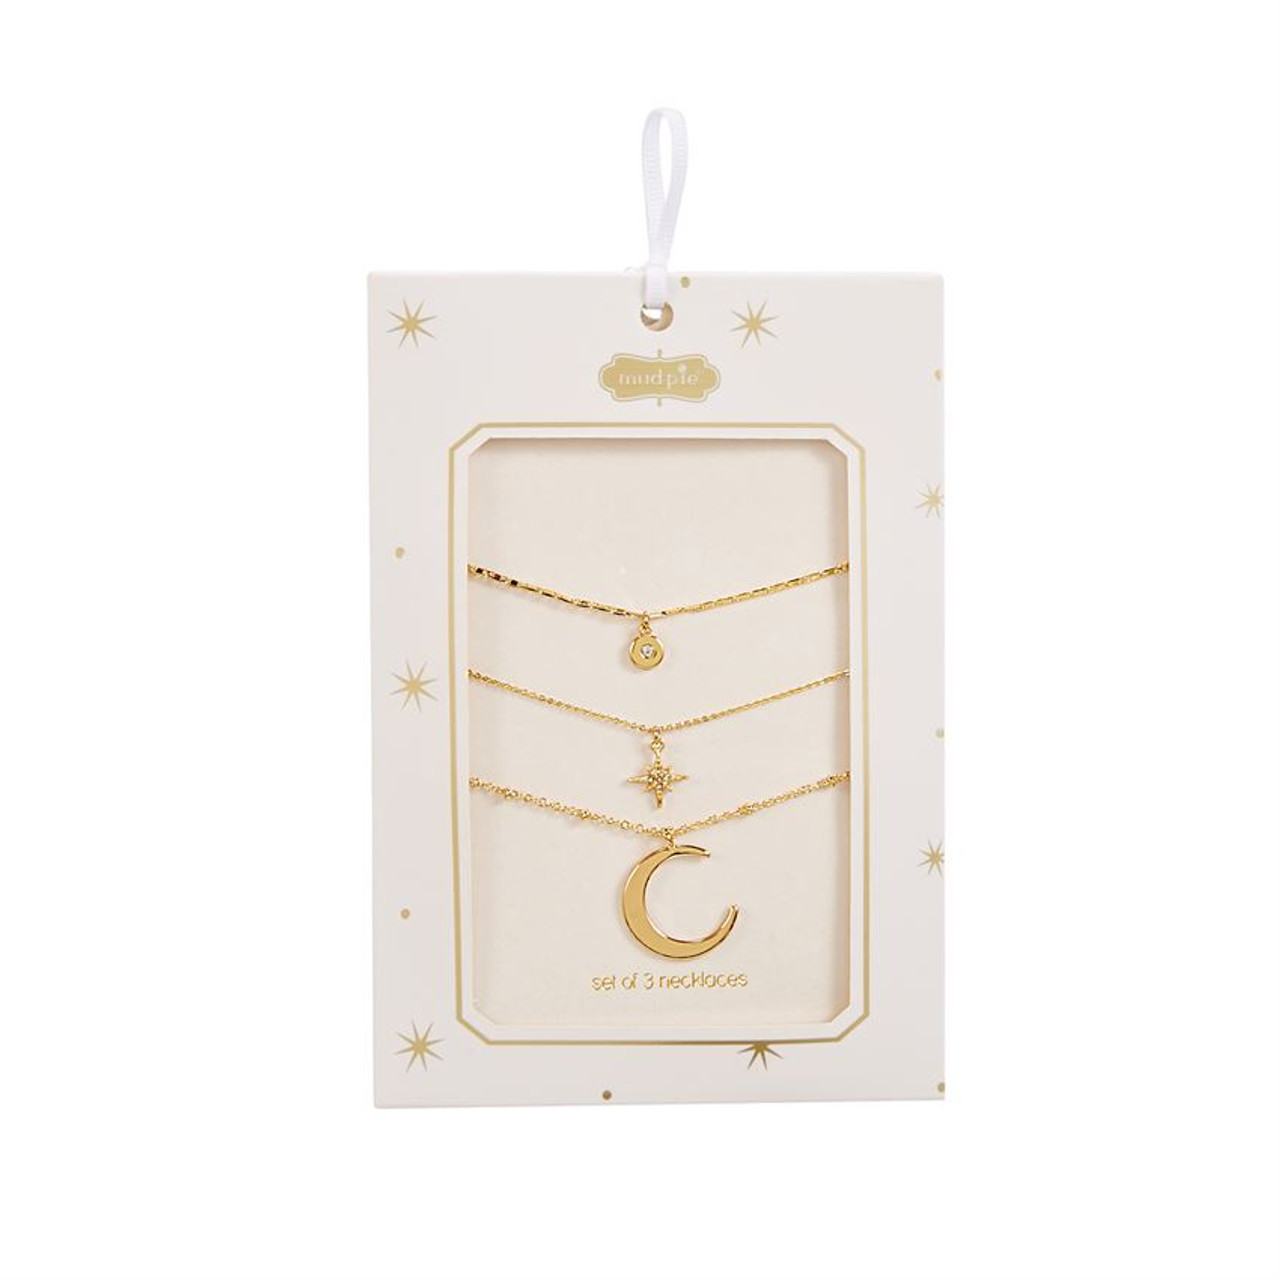 Includes three different gold metal chain necklaces with delicate moon and star pendants. Can be worn individually or layered together. Available in 3 styles. Comes in gift-ready packaging.